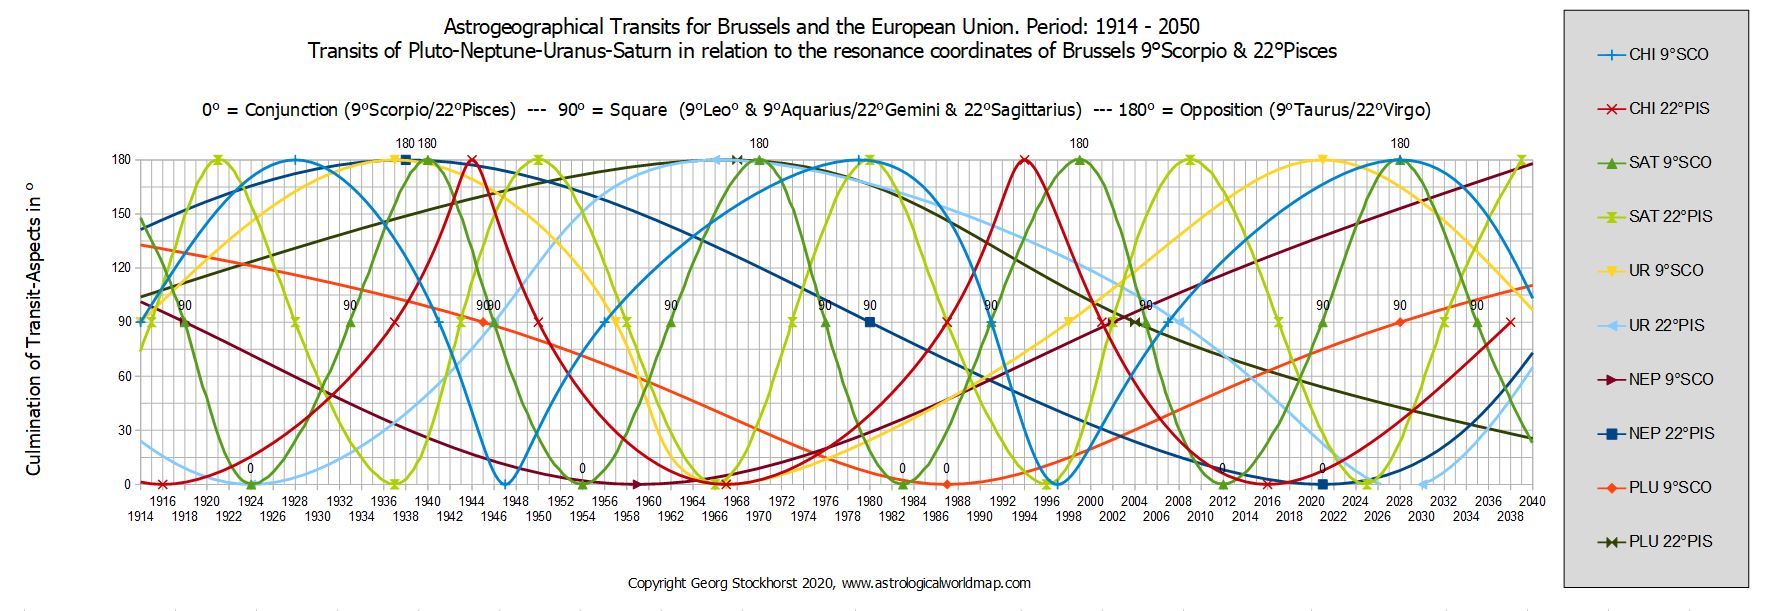 astrology and astrogeography of the European Union and brussels